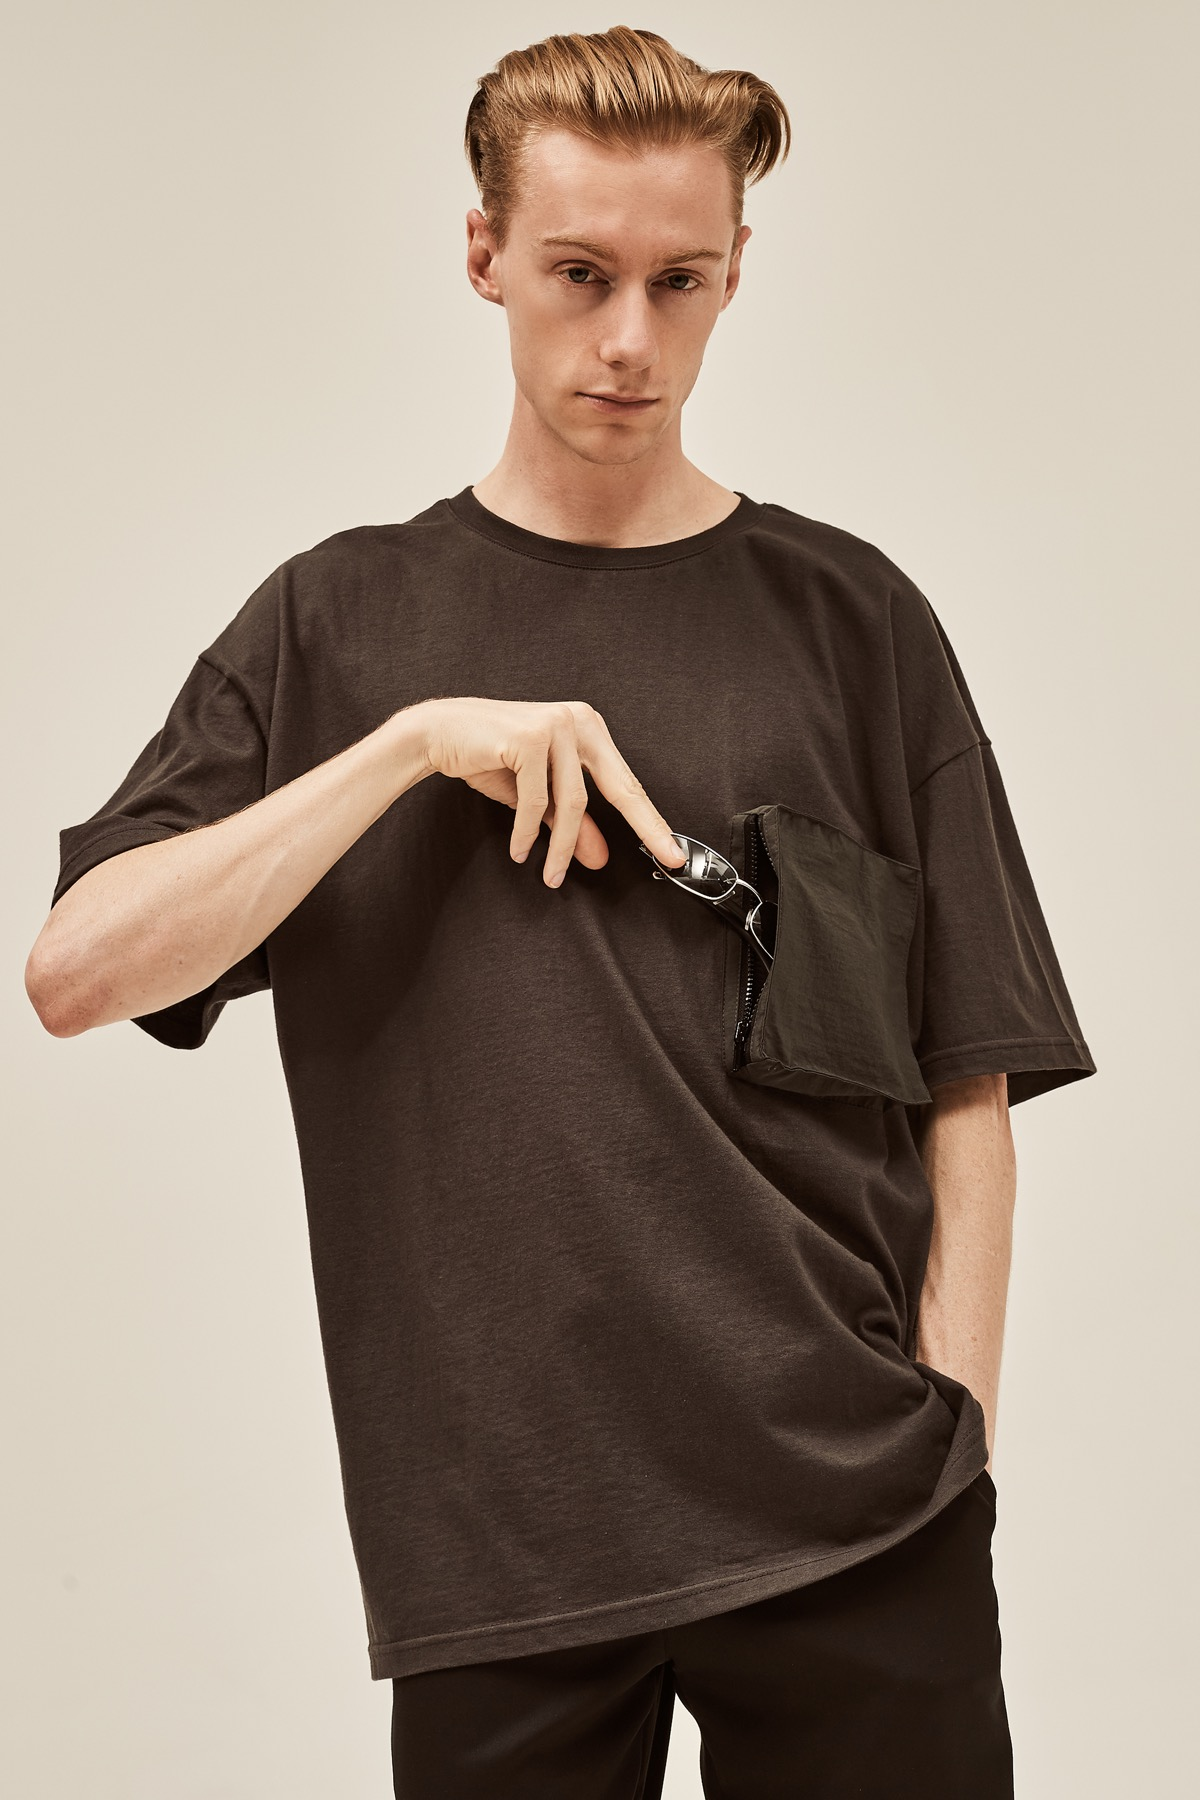 CHRACOAL POCKET DOCKING T-SHIRTS